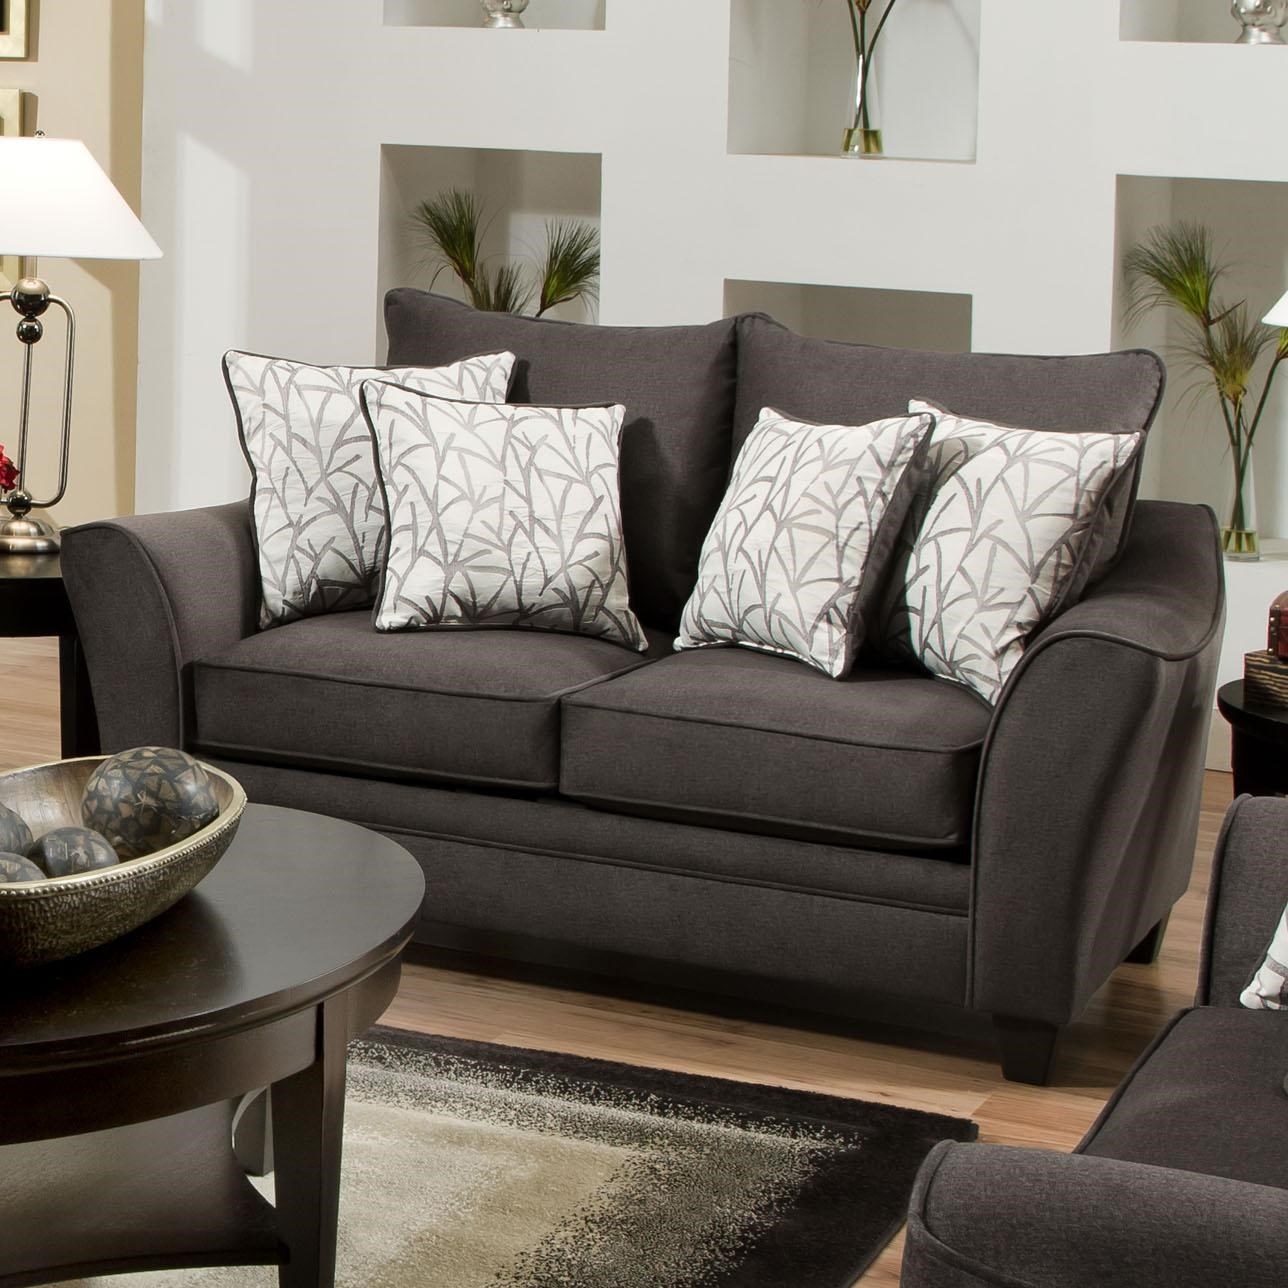 contemporary style furniture. American Furniture 3850 Elegant Loveseat With Contemporary Style Contemporary Style Furniture T